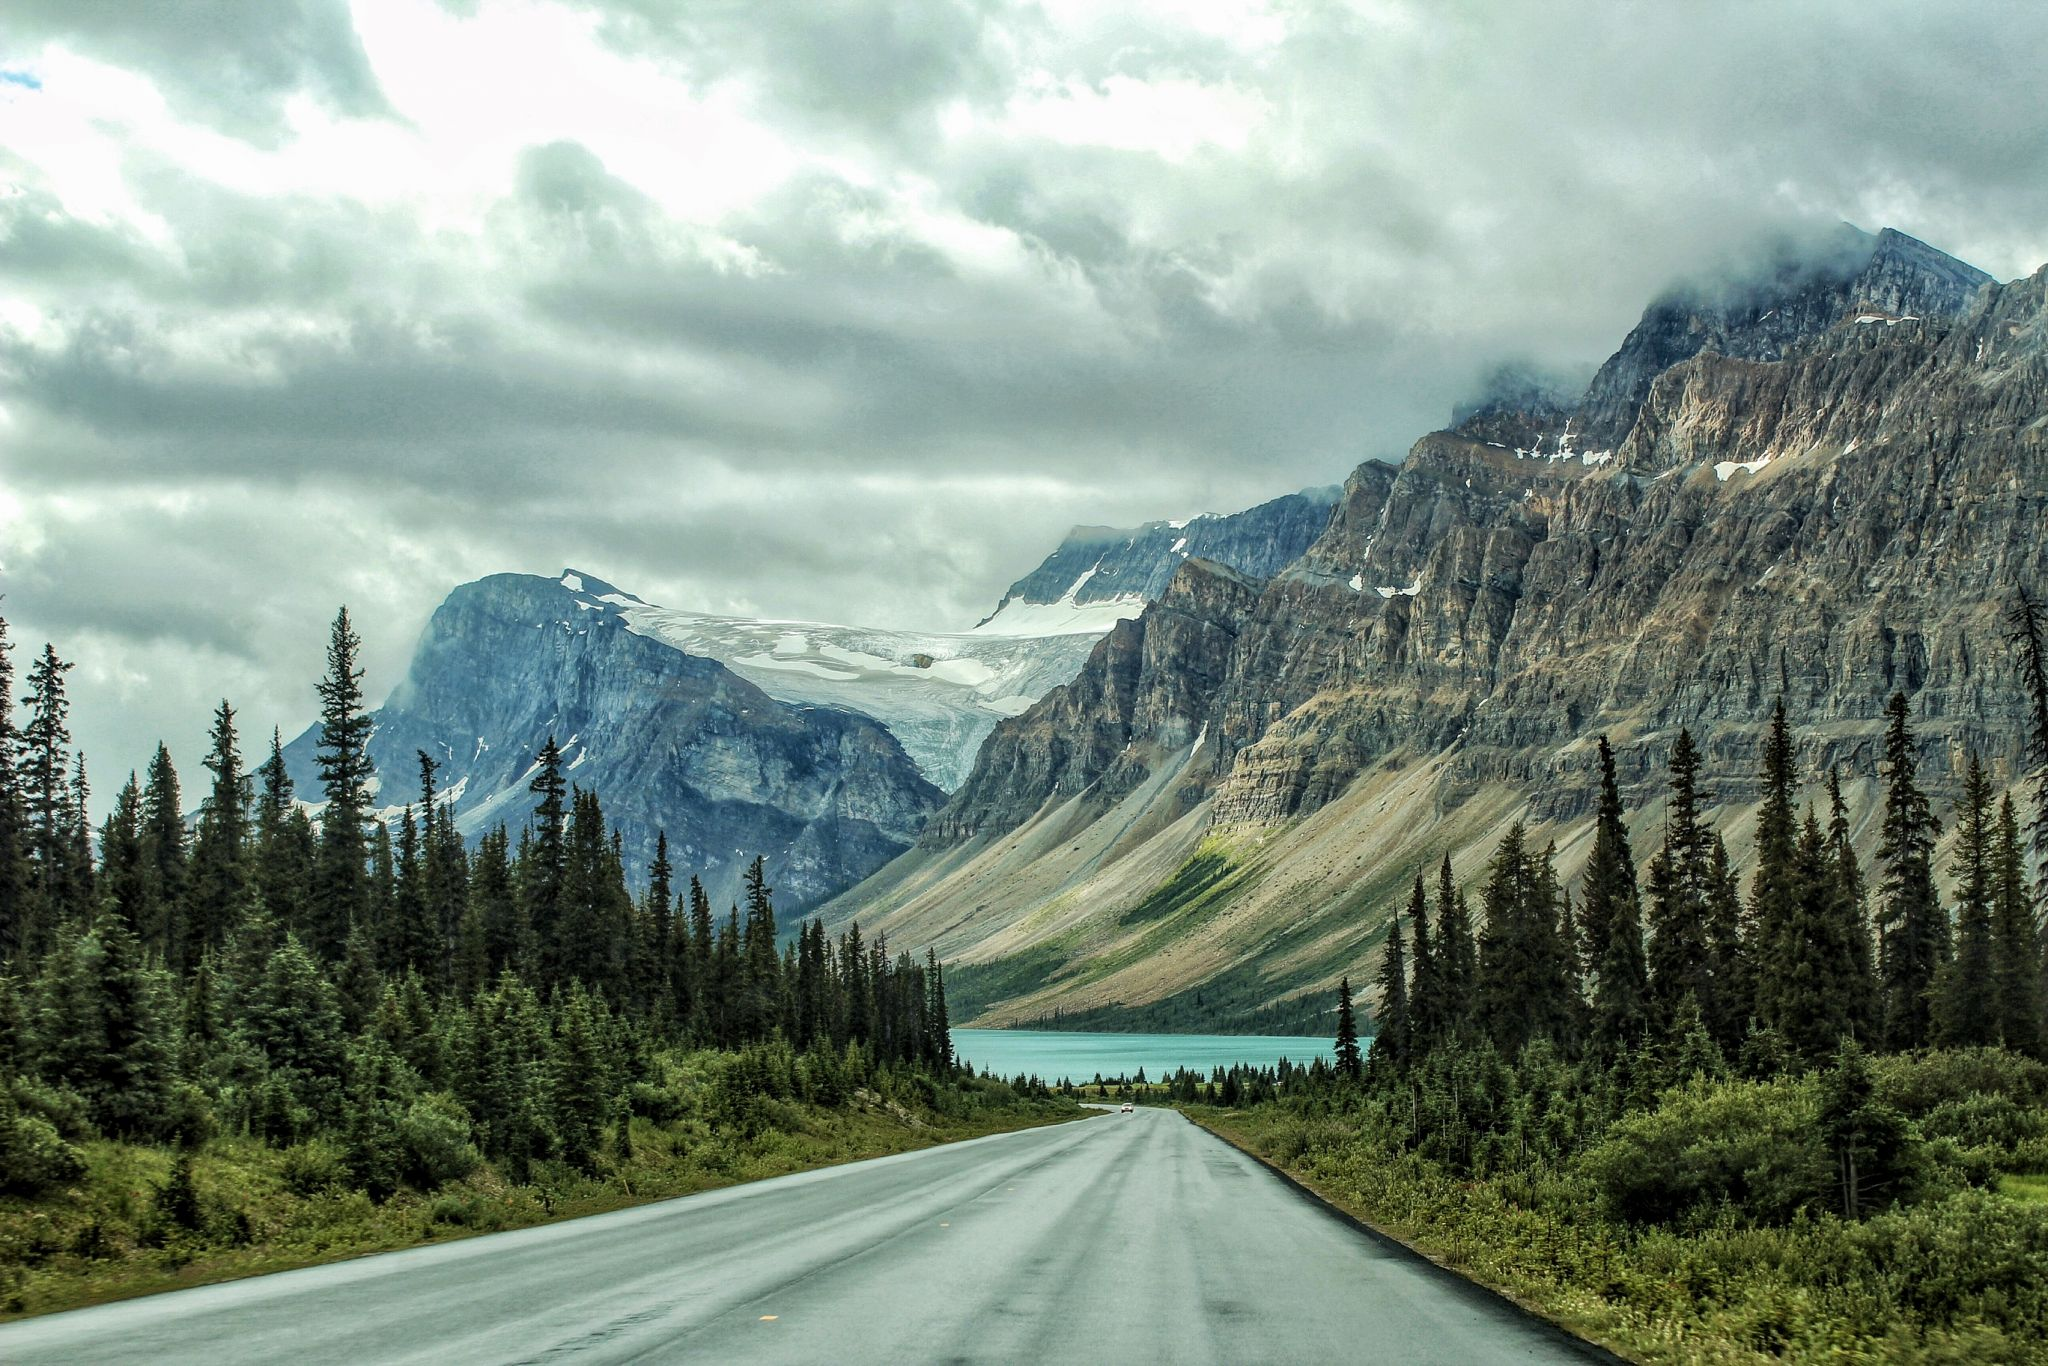 Approach to Bow Lake, Canada